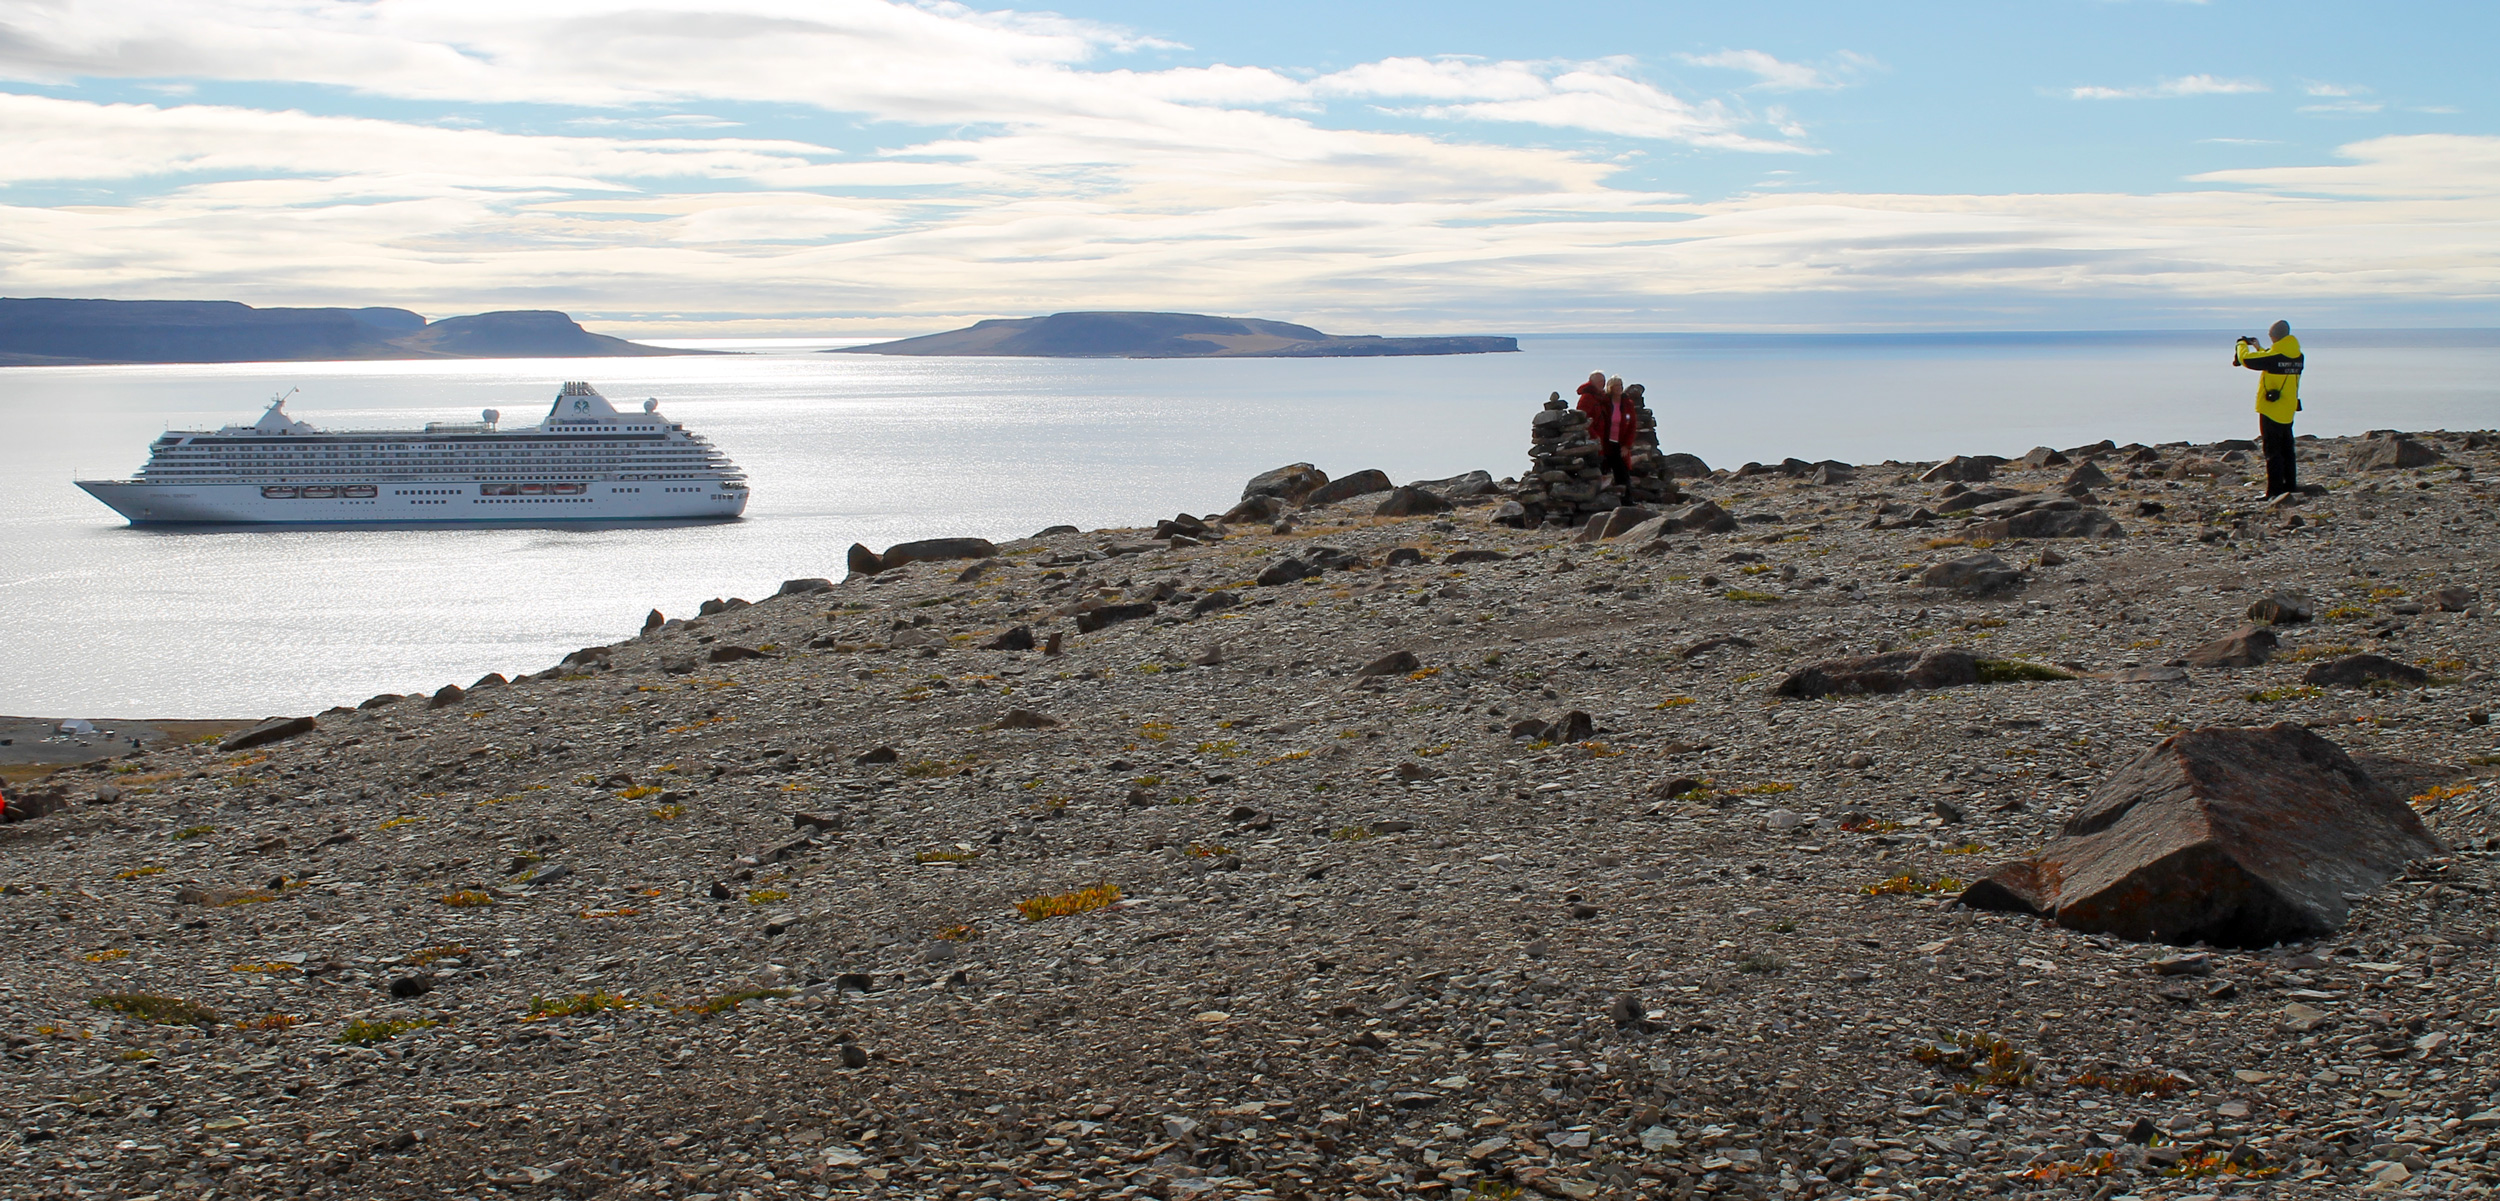 At a lookout on the north edge of Queens Bay, an expedition guide takes photos of two passengers in front of rock pilings overlooking the mouth of the bay that houses the Northwest Territories hamlet of Ulukhaktok and, for 24 hours, the Crystal Serenity. Photo by Elaine Anselmi